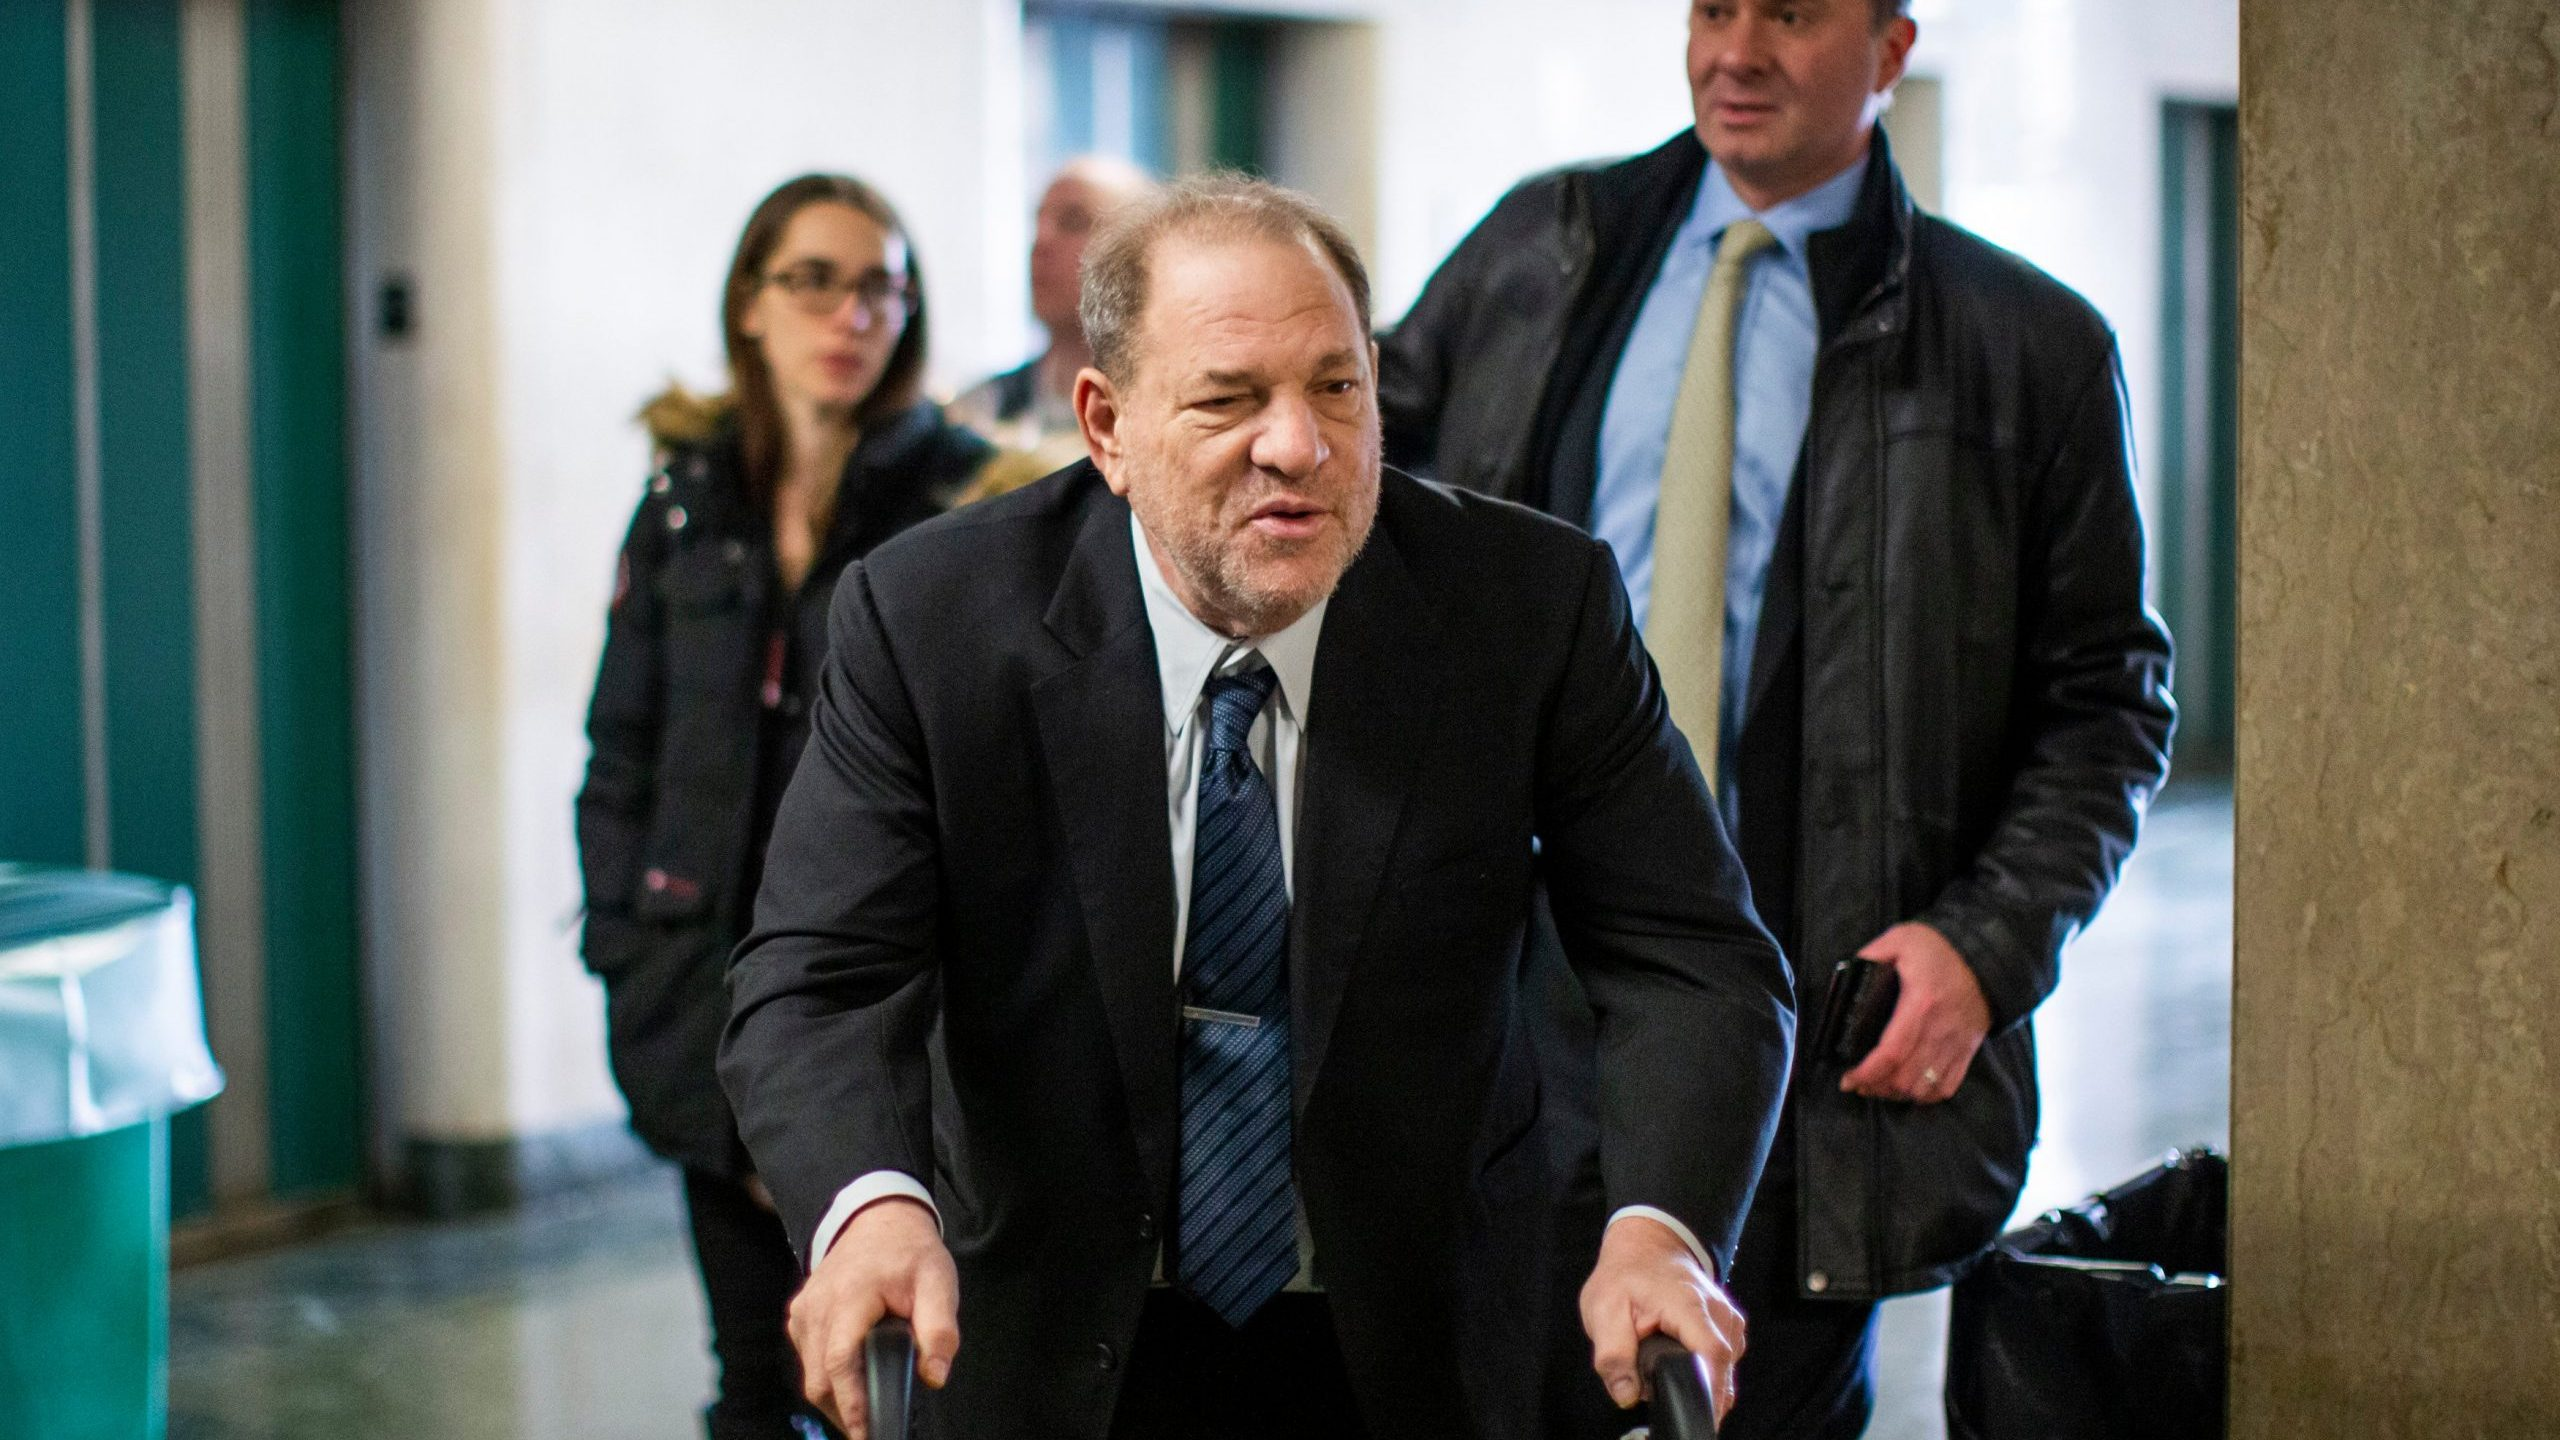 Disgraced film producer Harvey Weinstein arrives at the courtroom for his sexual assault trial at Manhattan criminal court on Feb. 3, 2020. (Credit: Eduardo Munoz Alvarez/Getty Images)